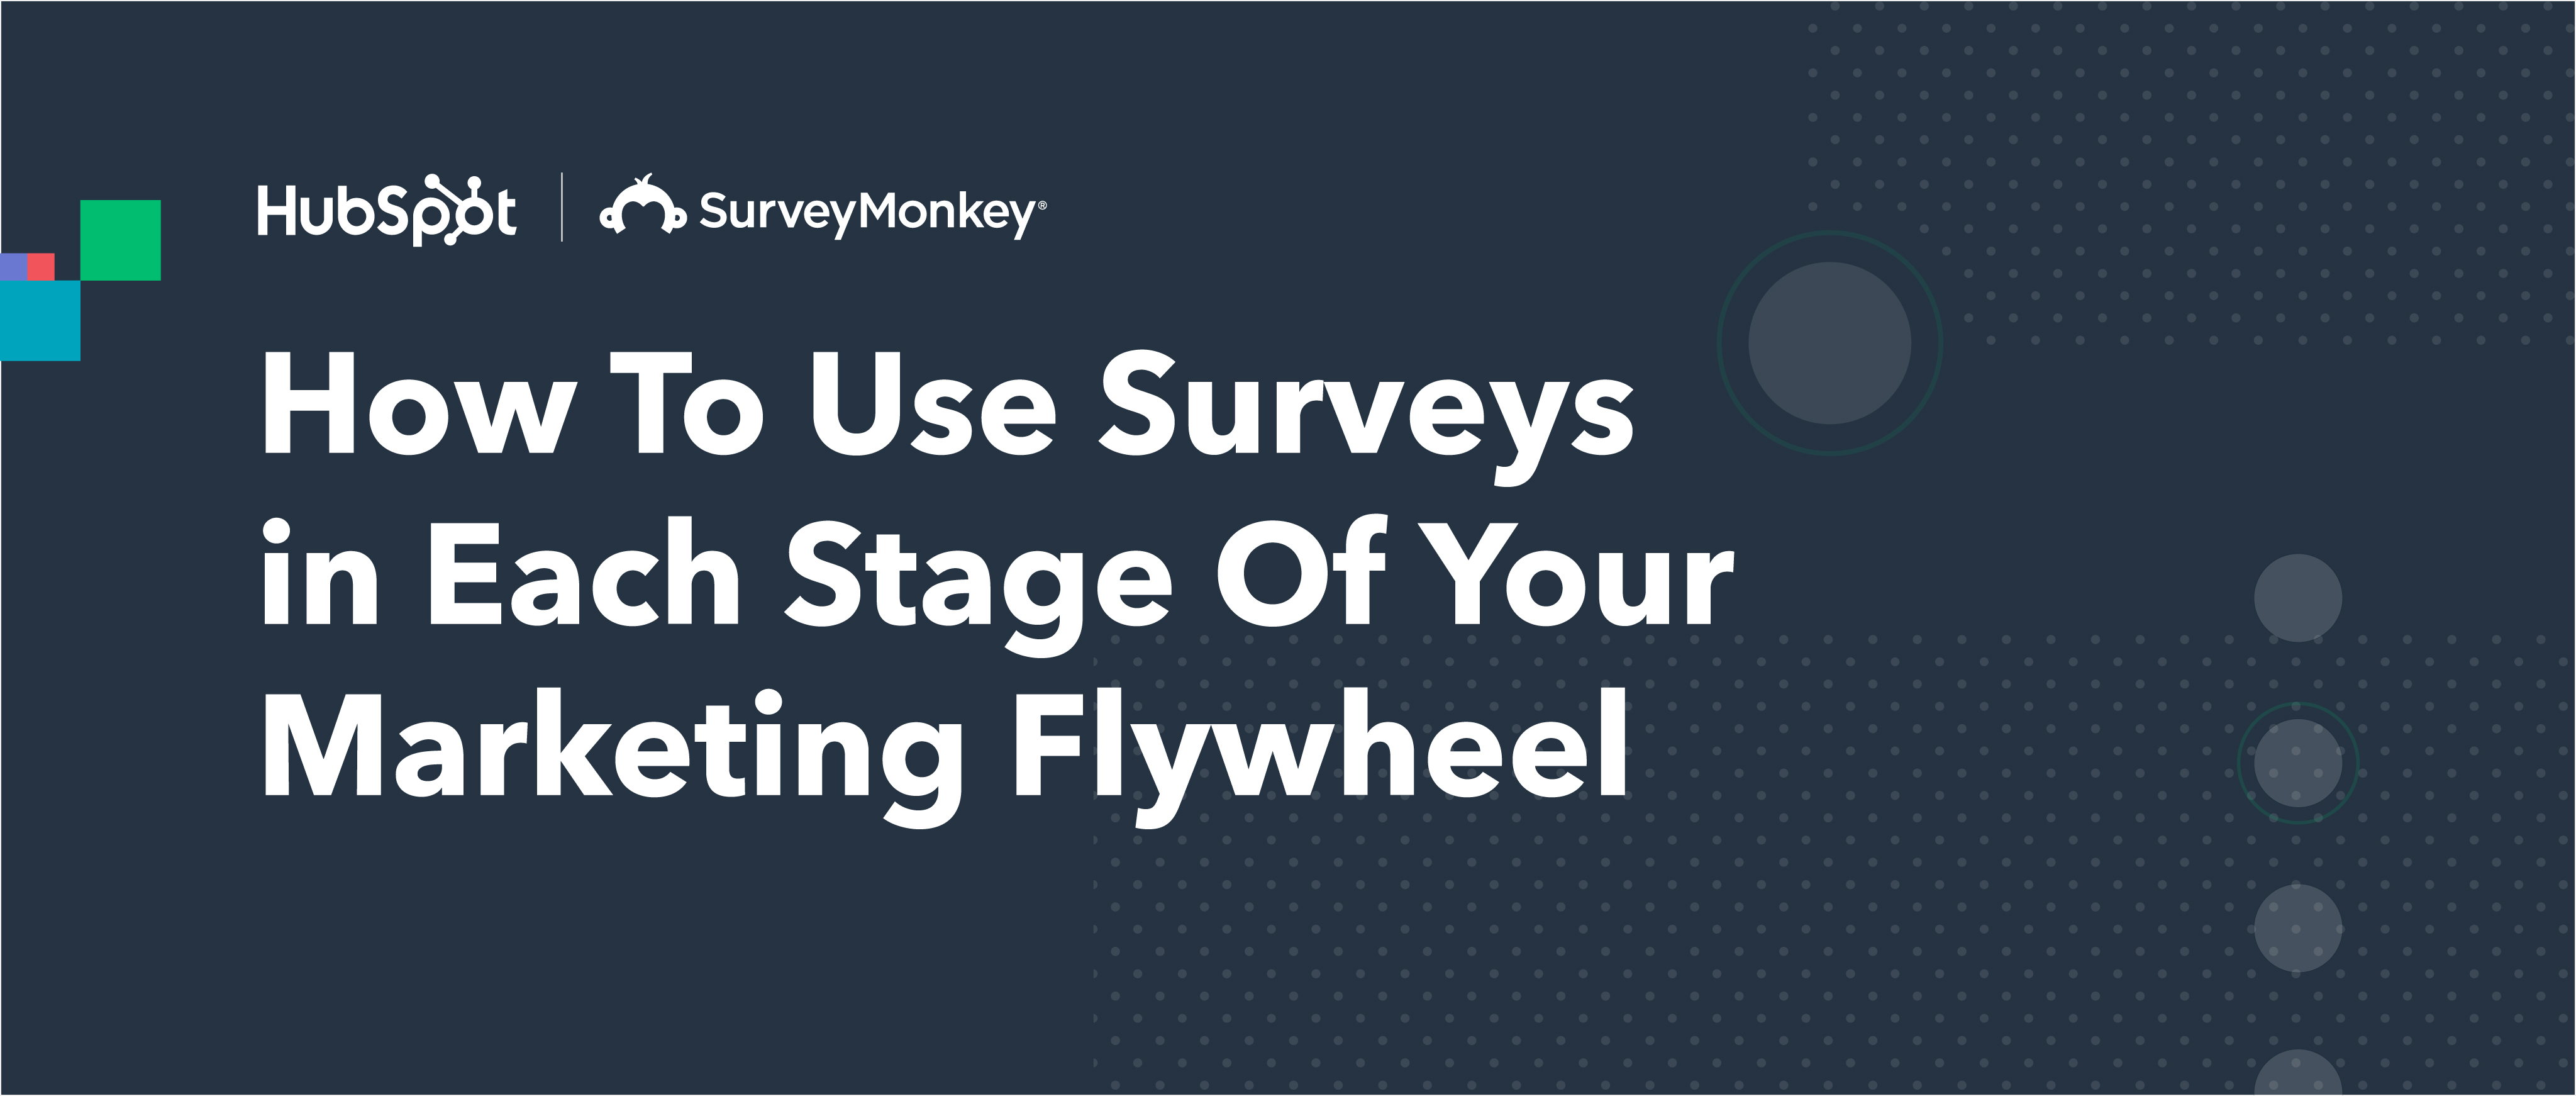 How To Use Surveys At Each State Of The Marketing Flywheel